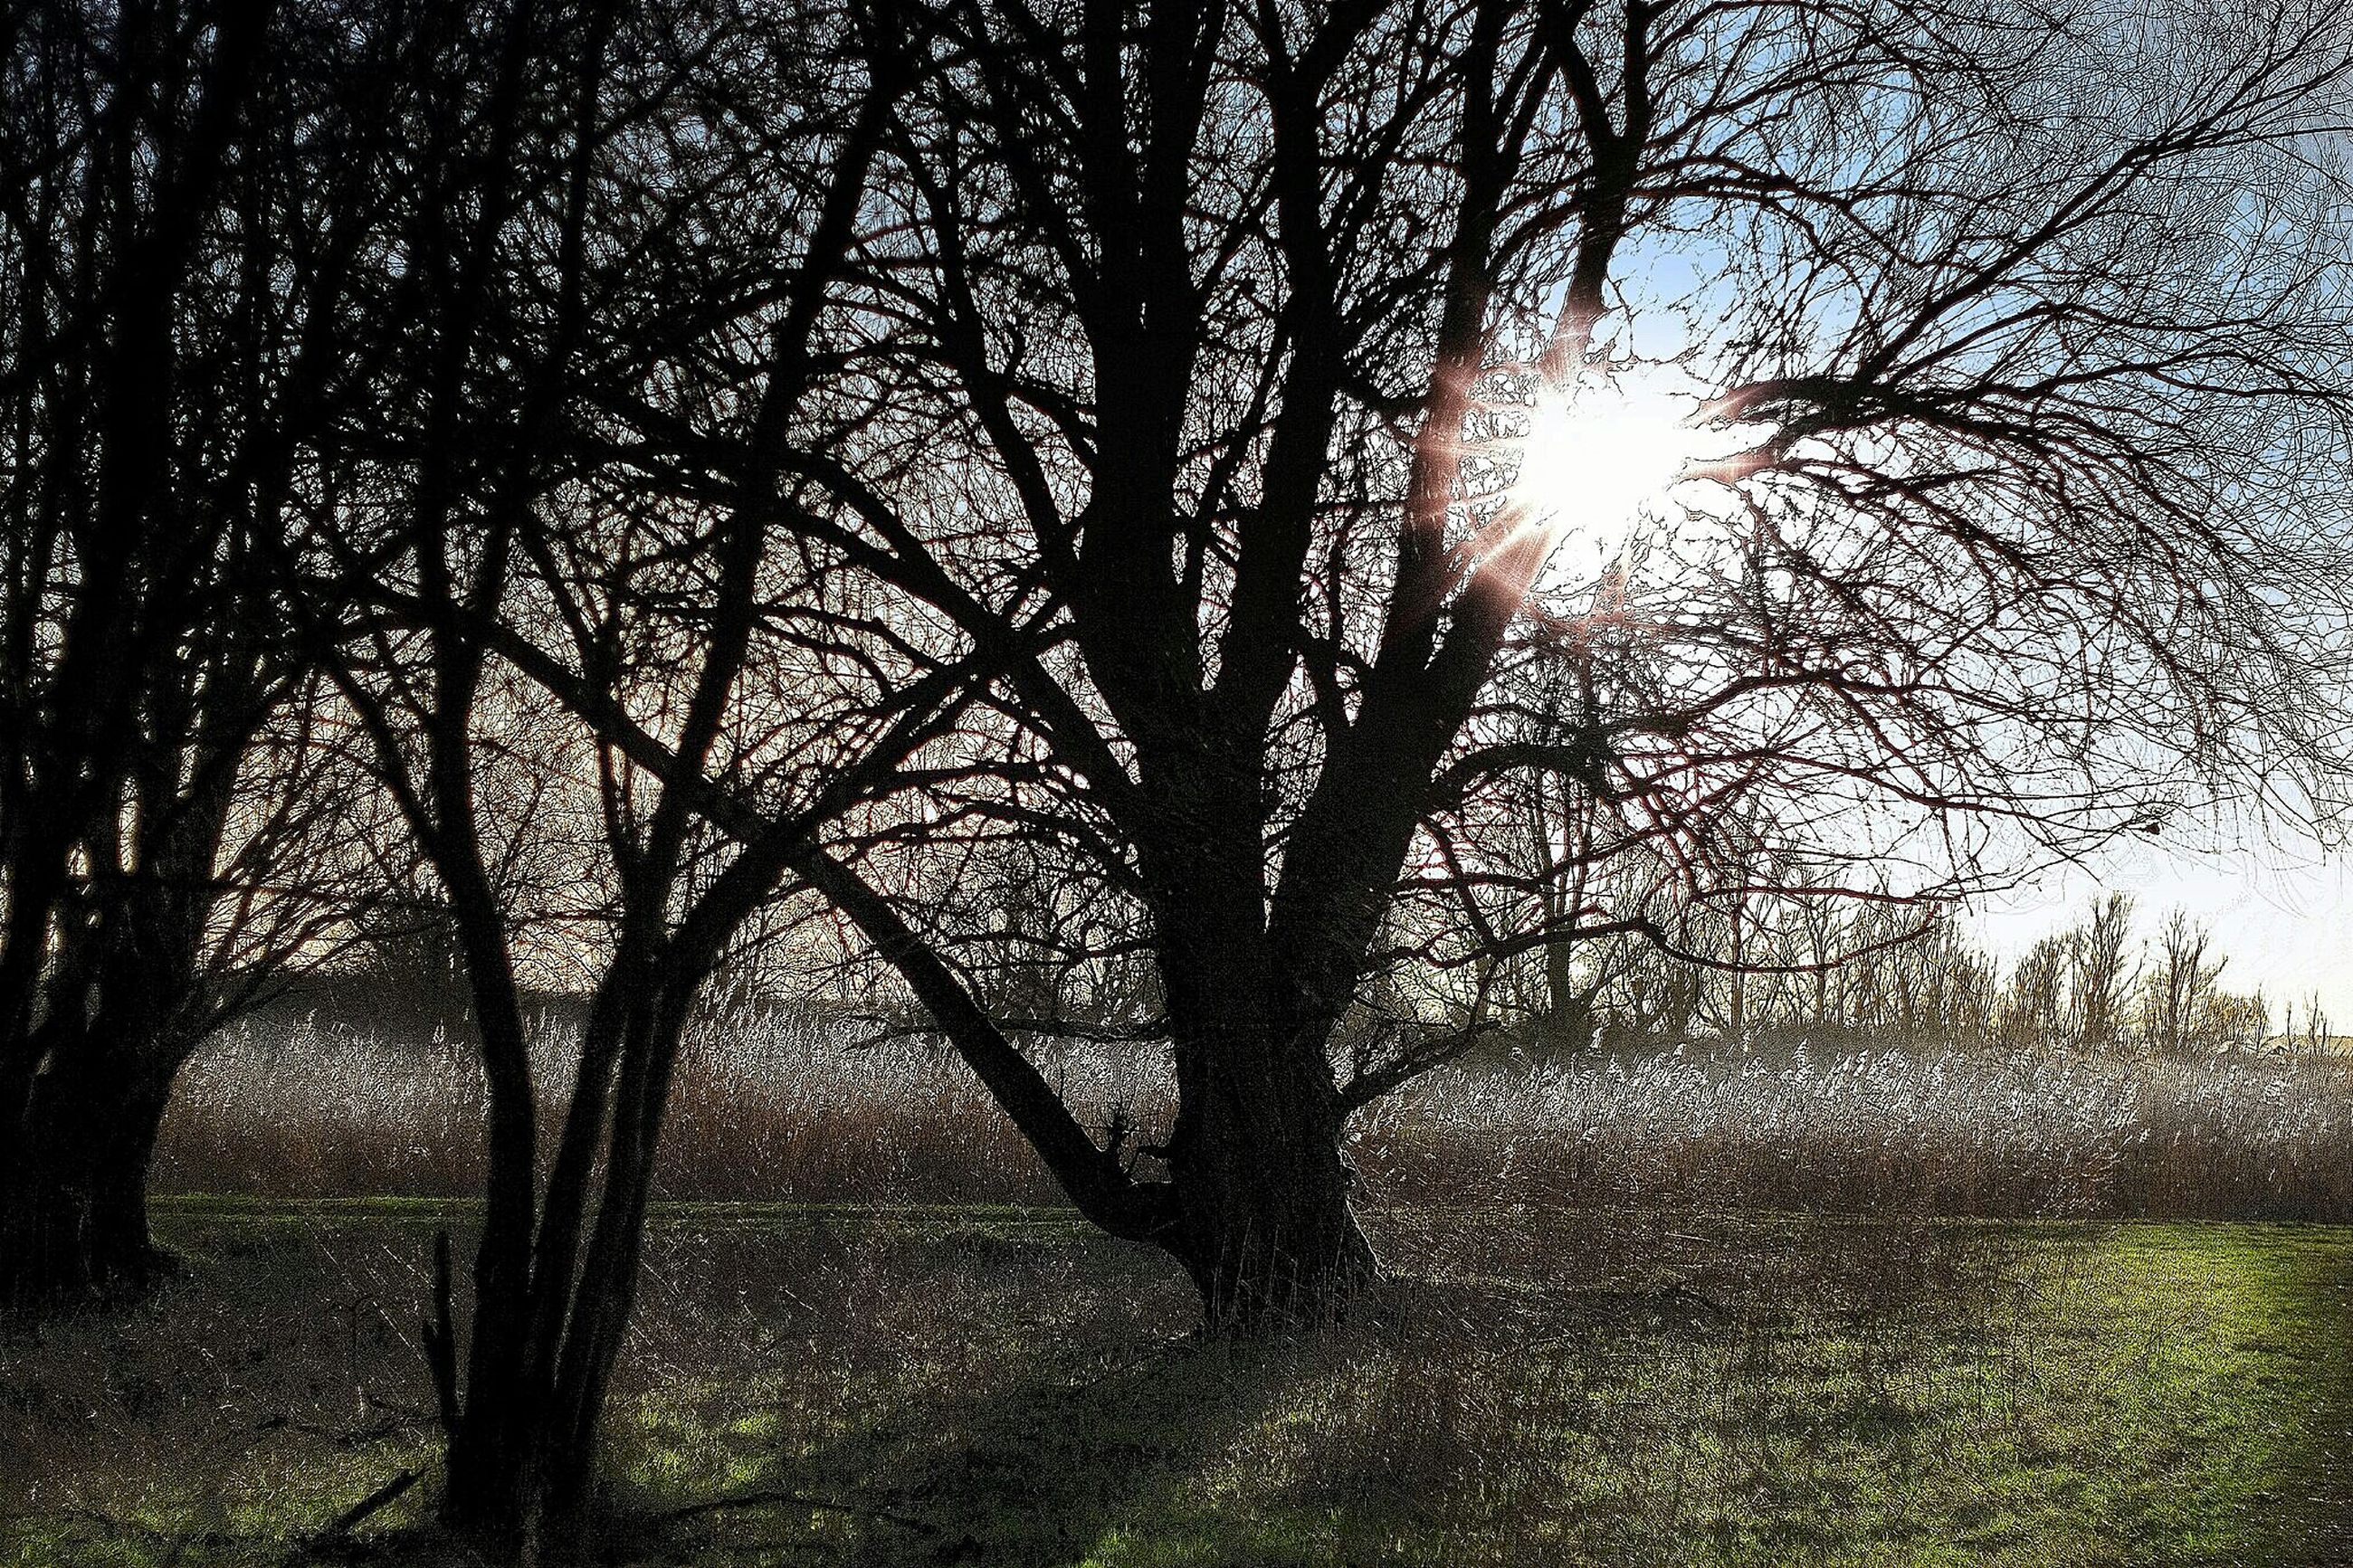 tree, tranquility, sun, sunlight, tranquil scene, branch, nature, growth, beauty in nature, bare tree, silhouette, scenics, grass, sunbeam, field, tree trunk, shadow, sky, landscape, lens flare